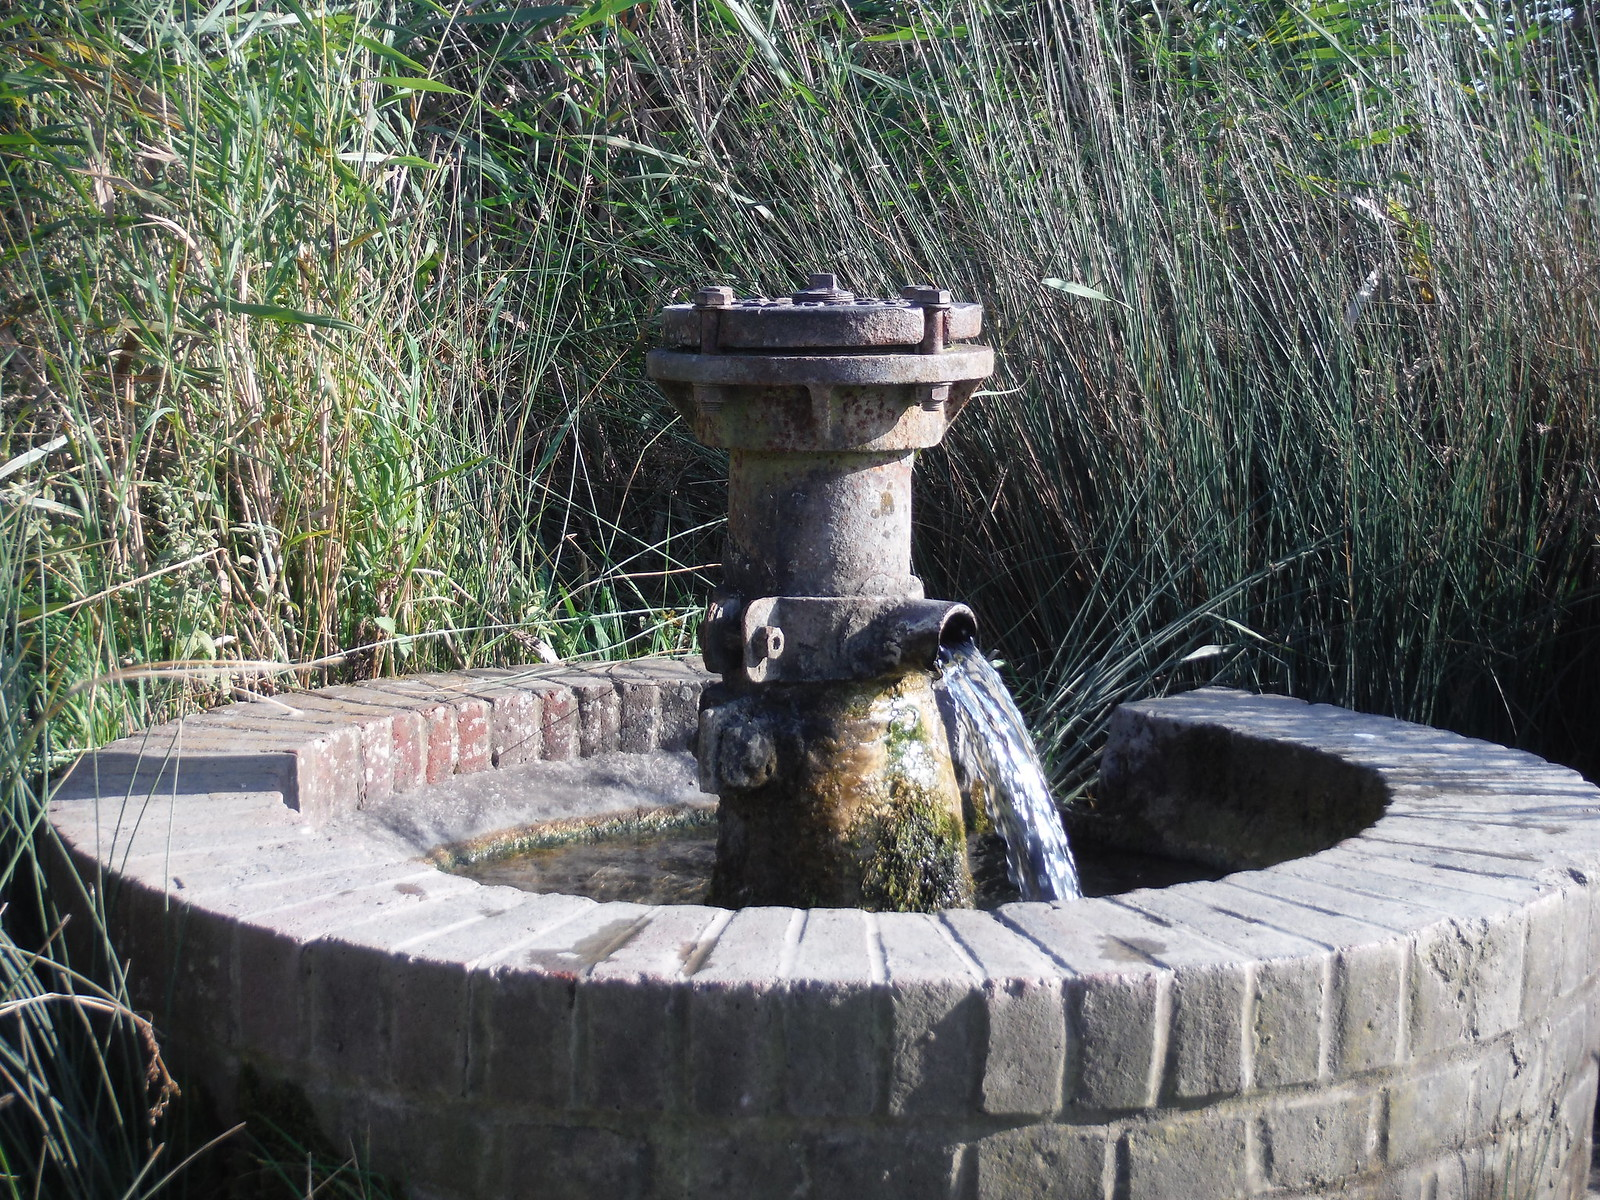 Artesian Well by car park at Oare Marshes Nature Reserve SWC Walk 299 - Teynham to Faversham